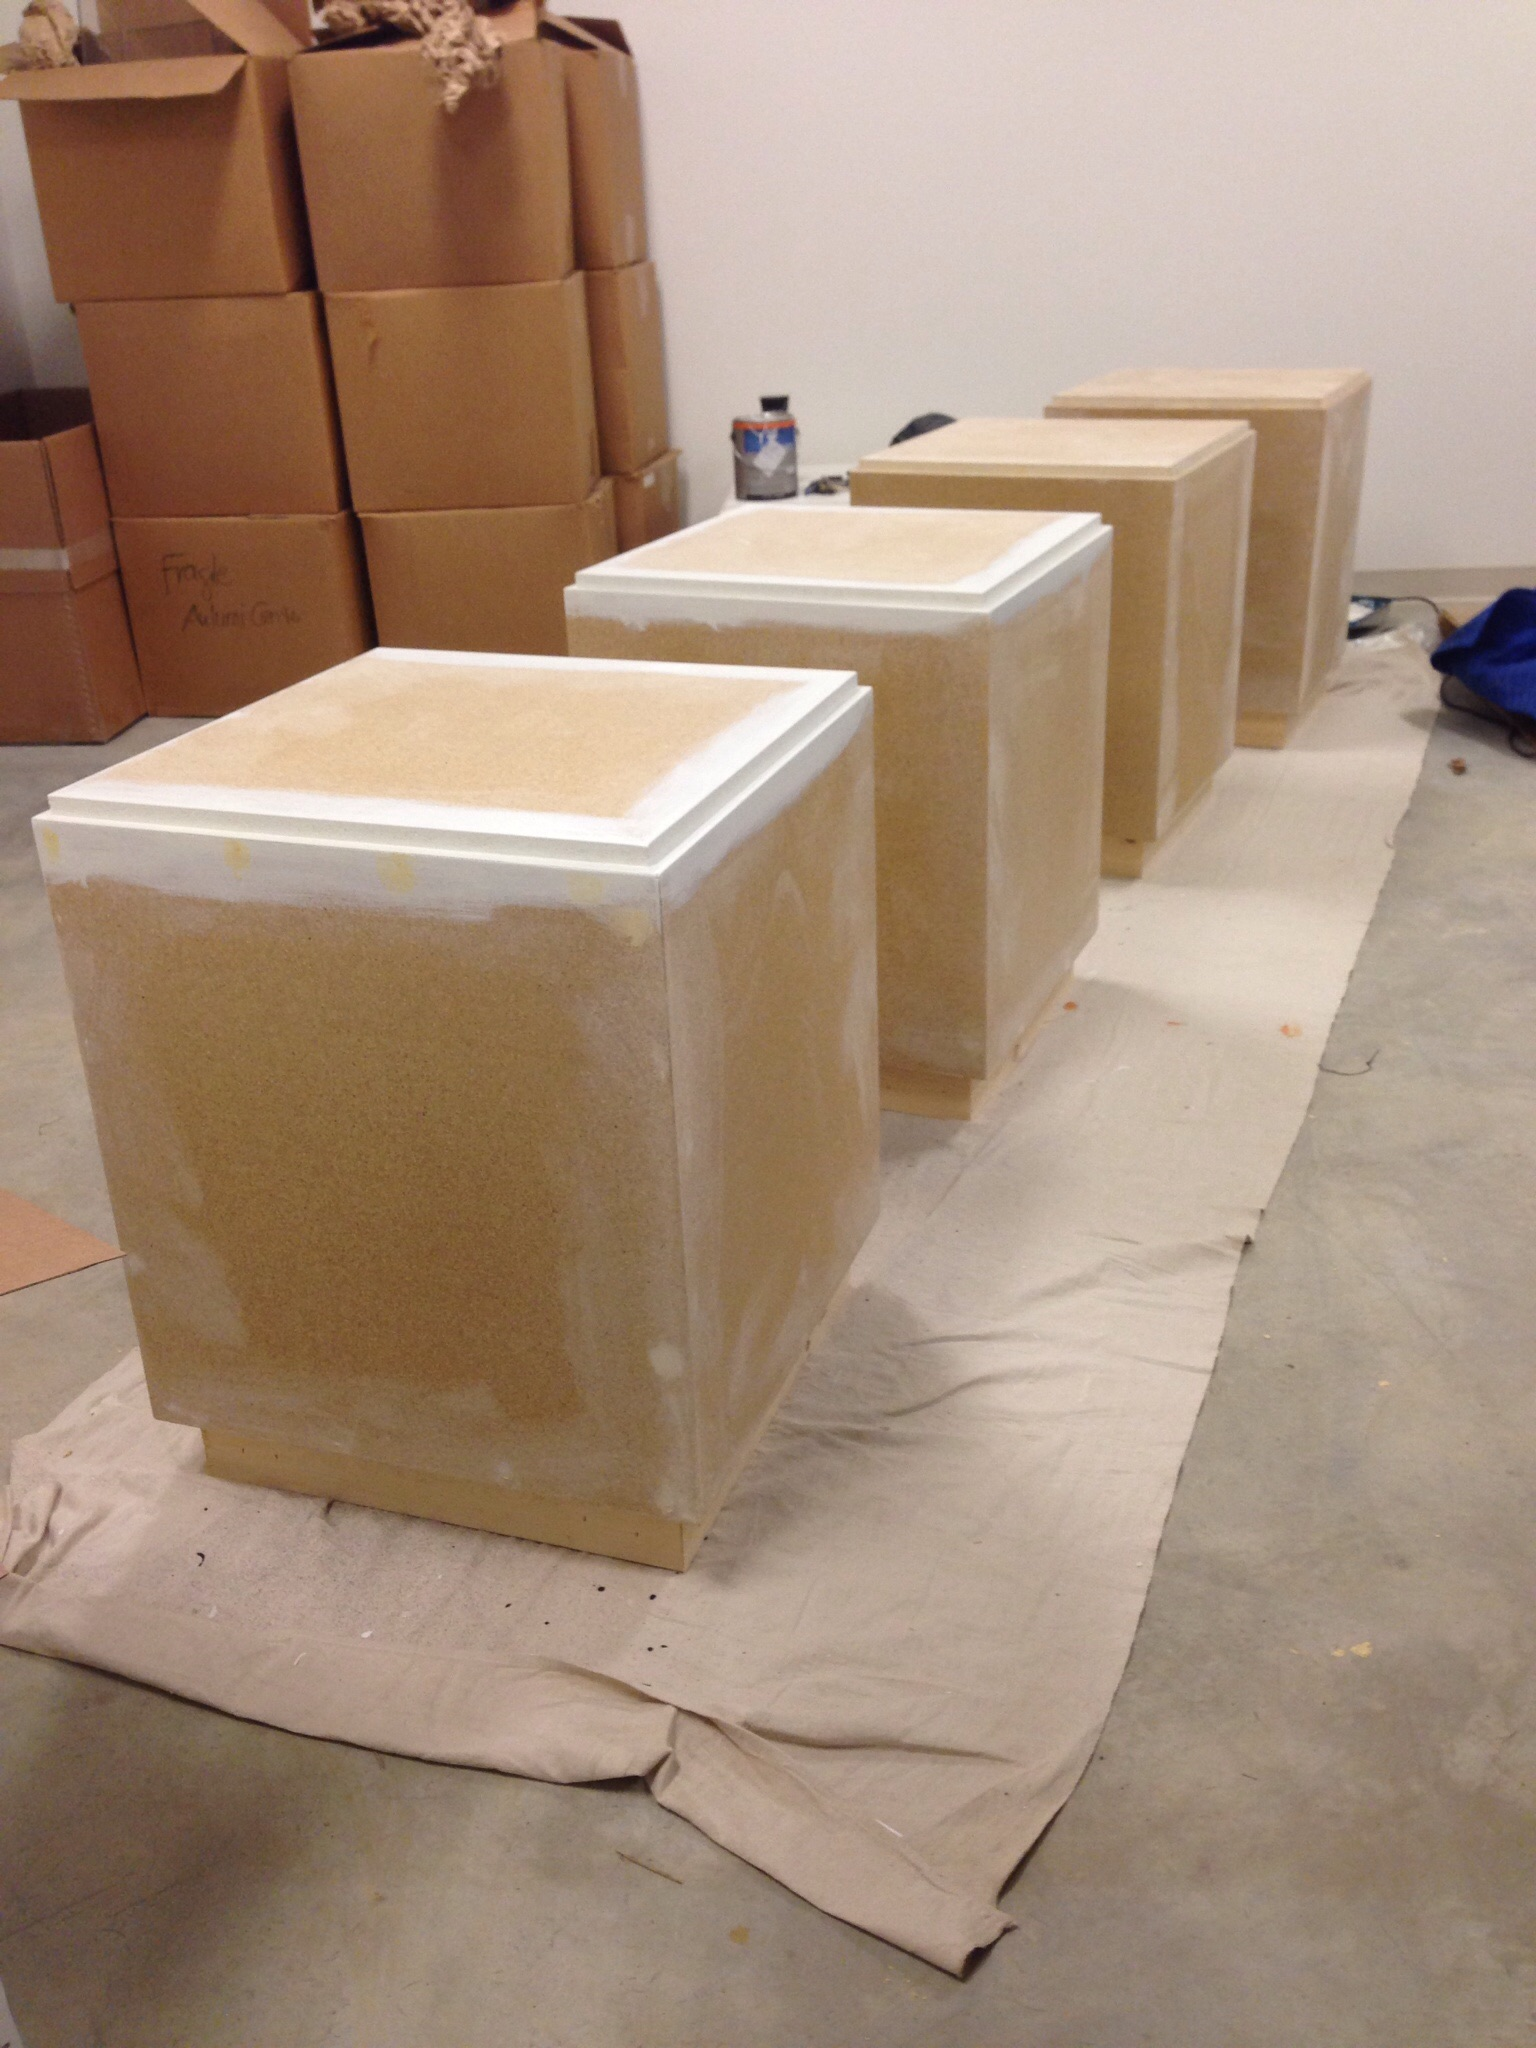 Fresh pedestals waiting for a coat of paint.